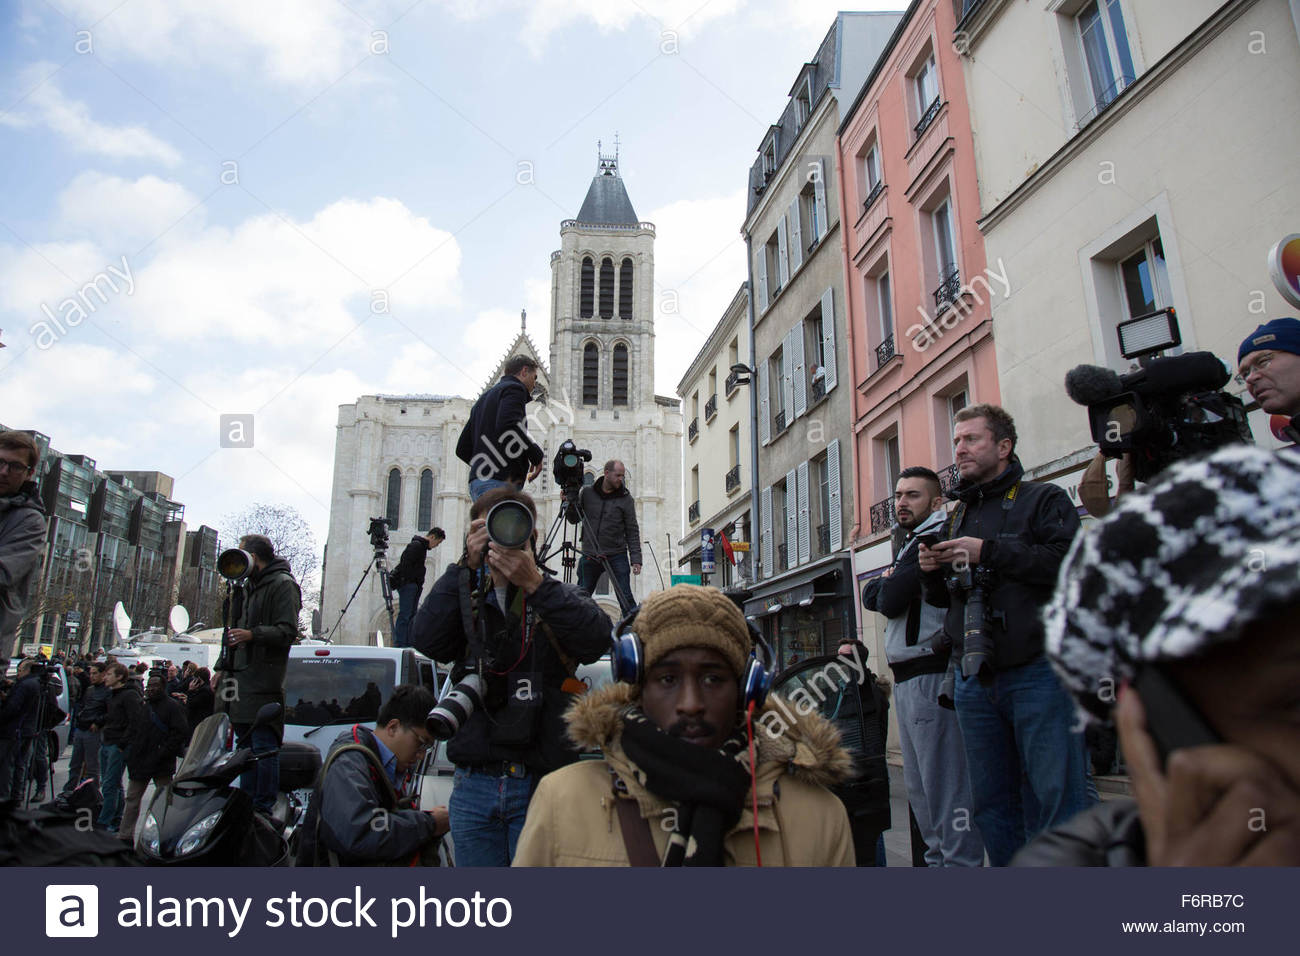 Saint-Denis, France. November 18th, 2015. FRANCE, Saint-Denis: Press photographers and cameramen are seen near a - Stock Image